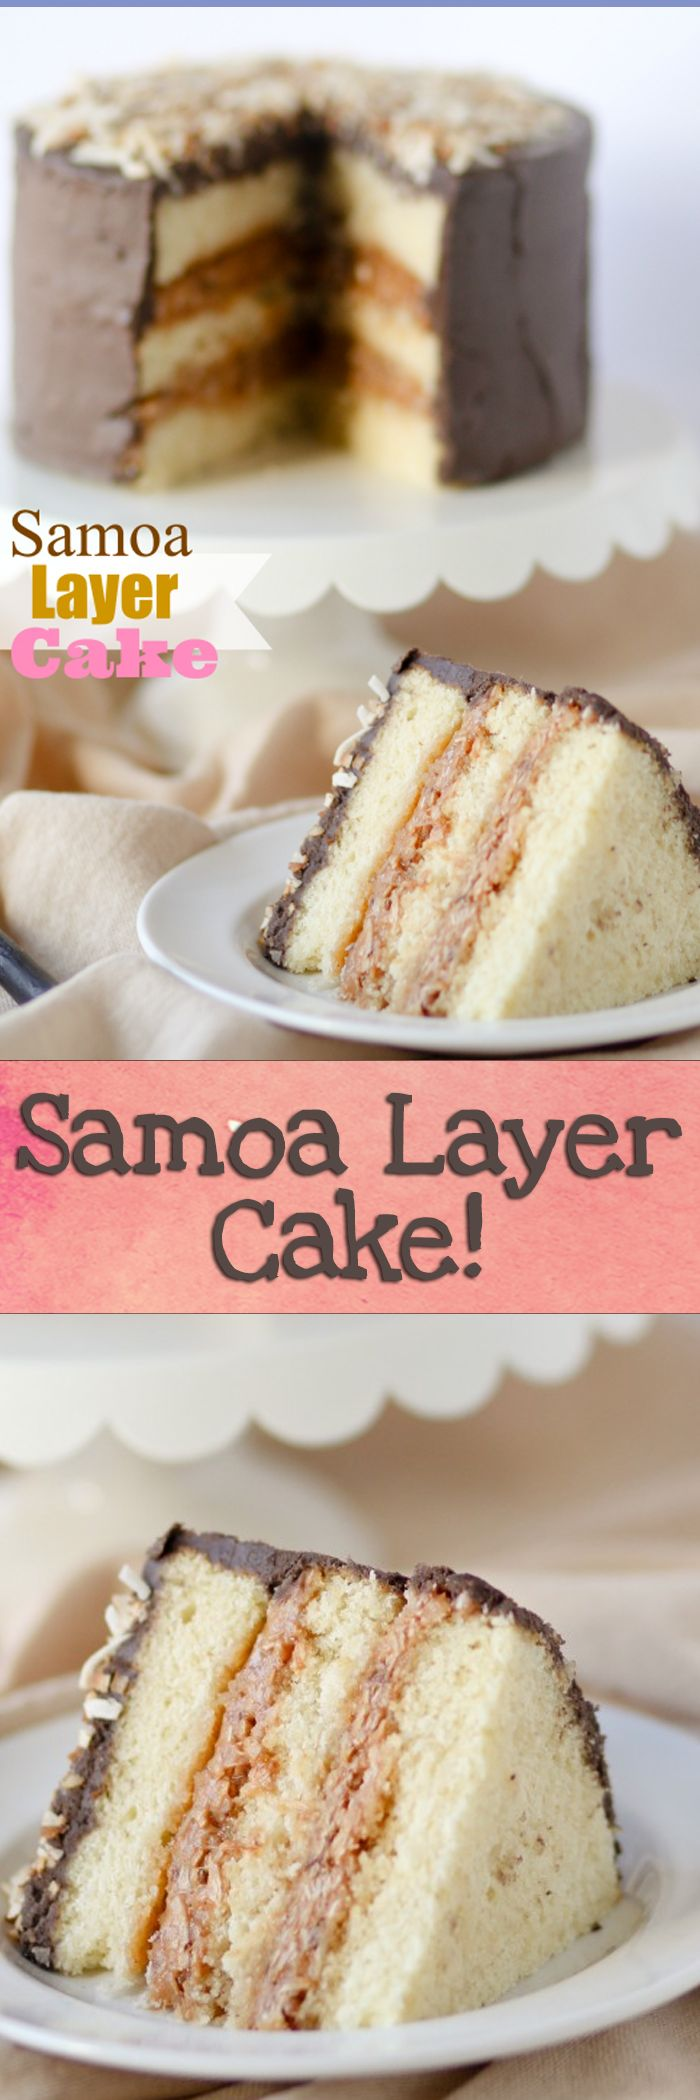 Samoa Layer Cake!! OMG NEED. Love that coconut/caramel frosting!!!